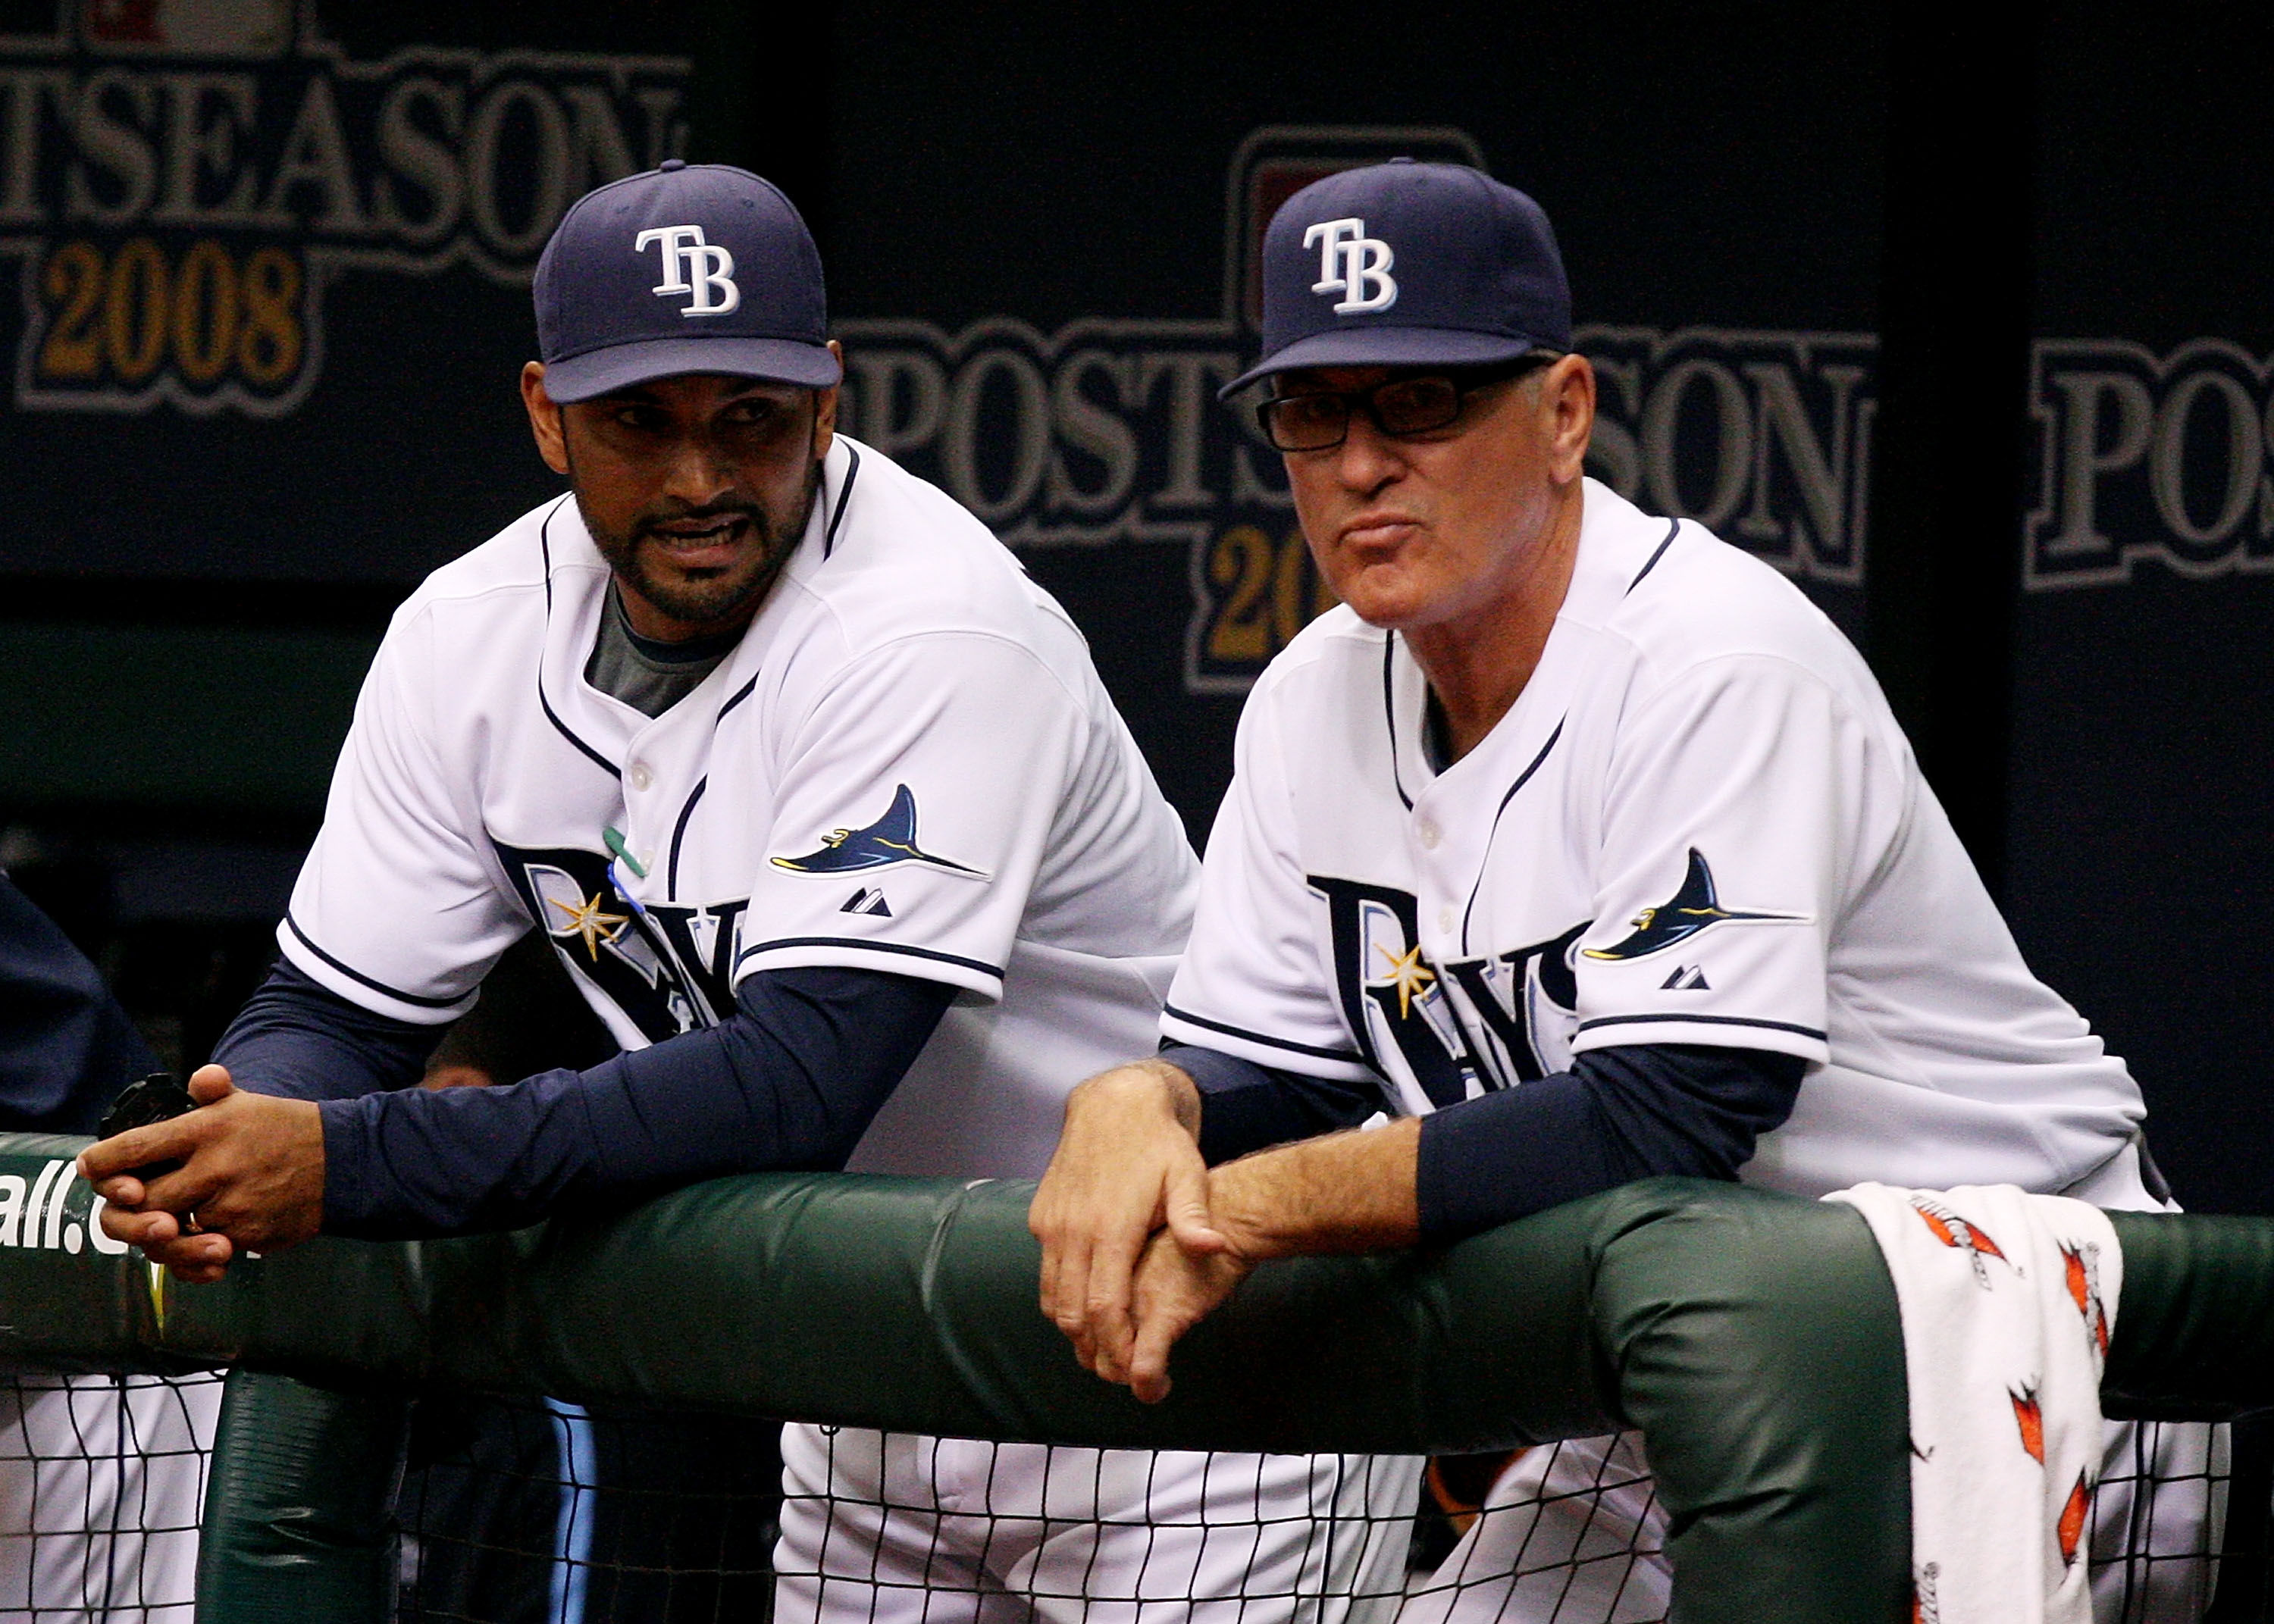 What if Maddon opted out of his contract, the Rays promoted Martinez, and then Maddon signed on as bench coach?